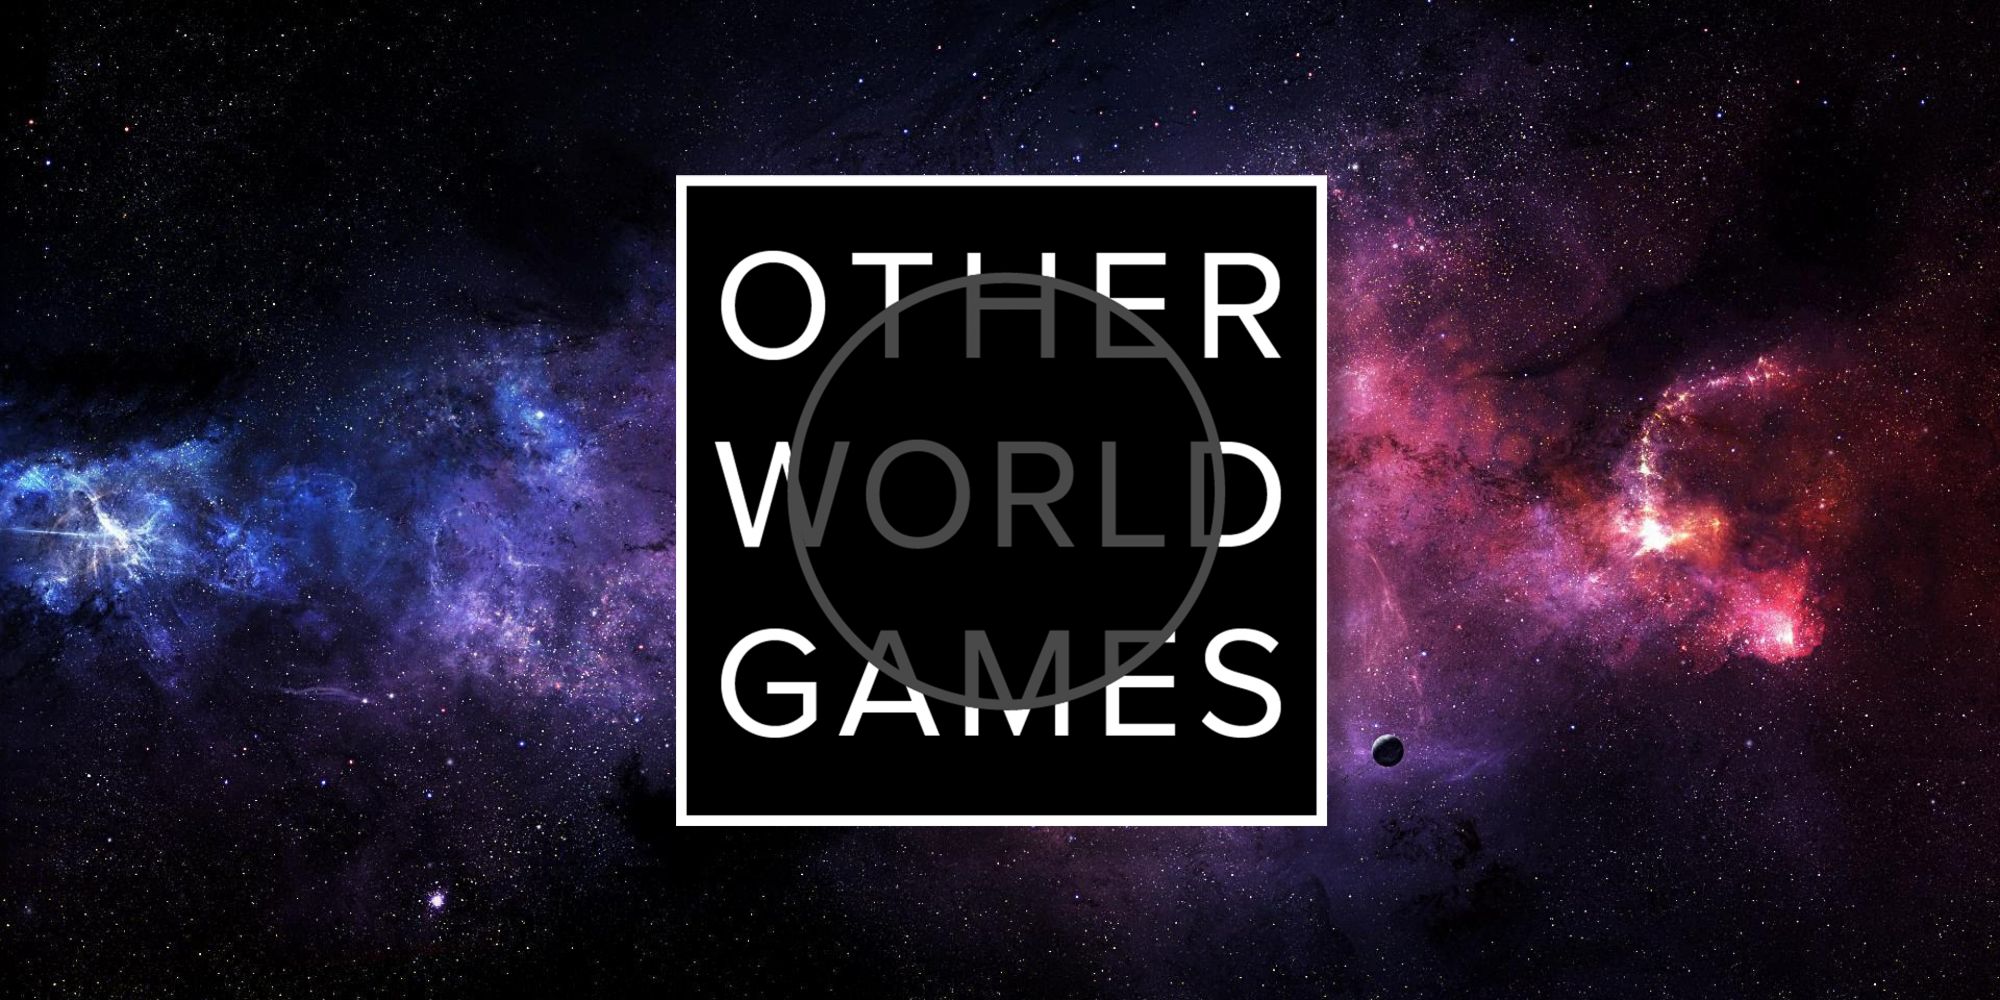 Otherworld Games